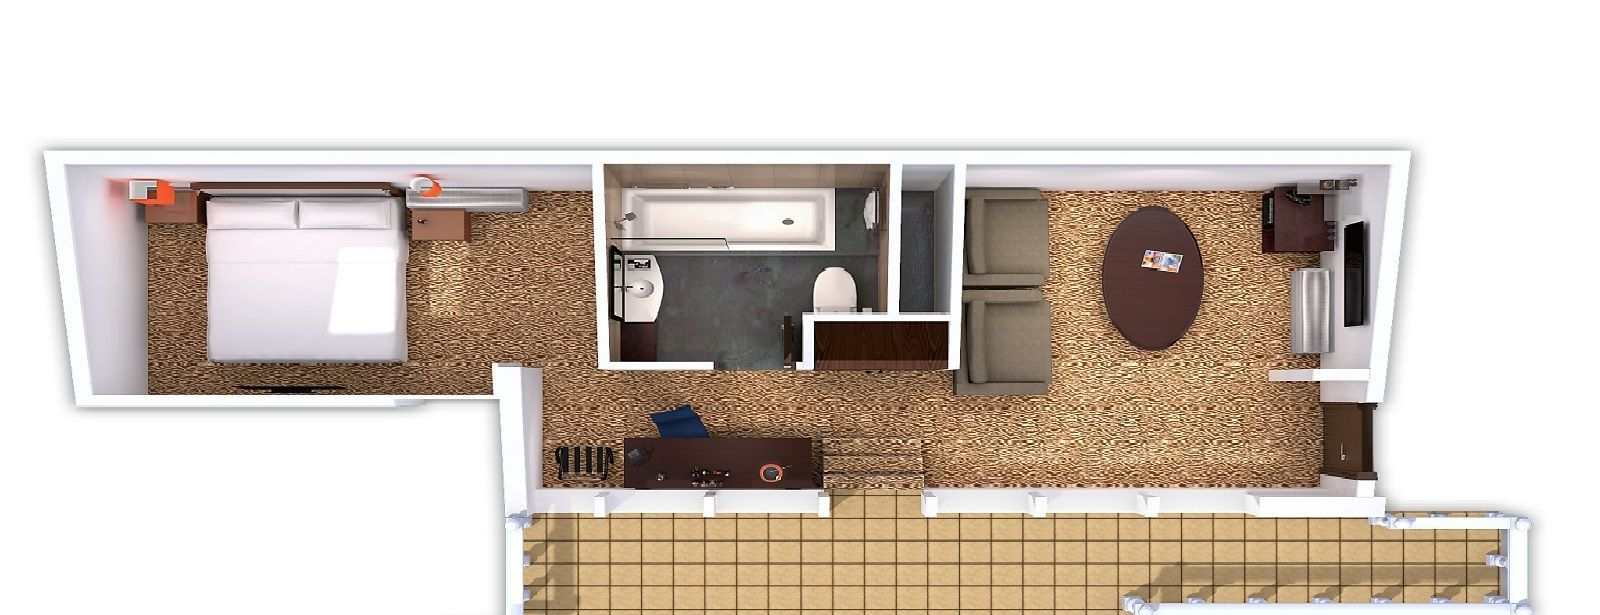 Club Premium Suite - floorplan